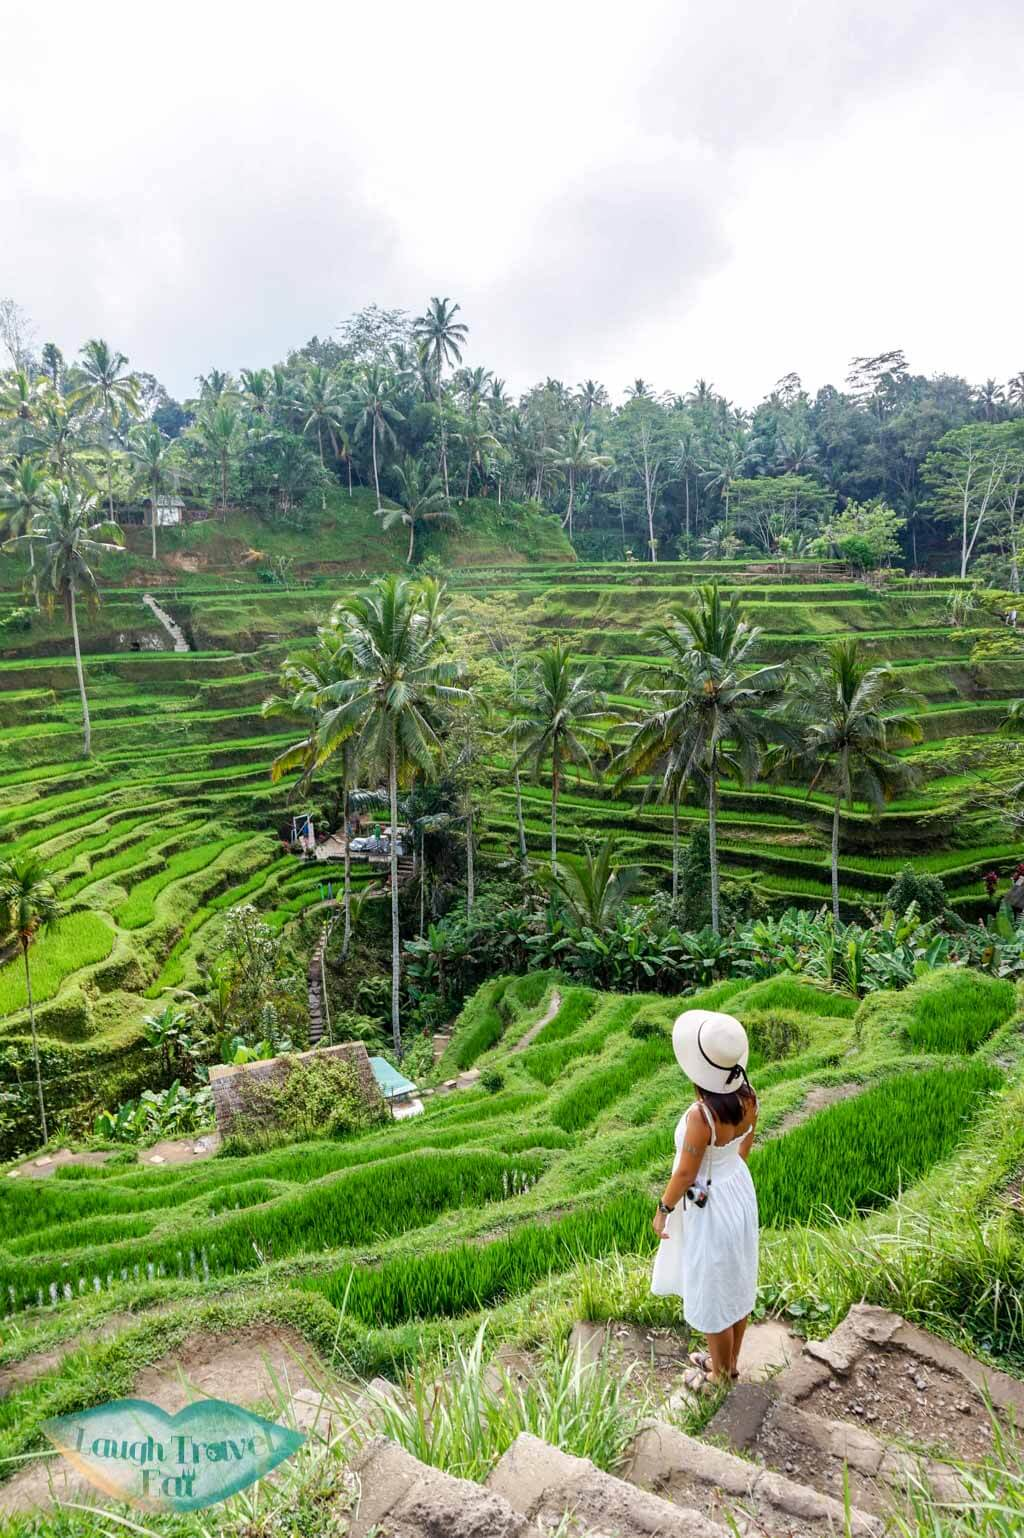 tegalalang rice paddies ubud bali indnoesia - Laugh Travel Eat-2